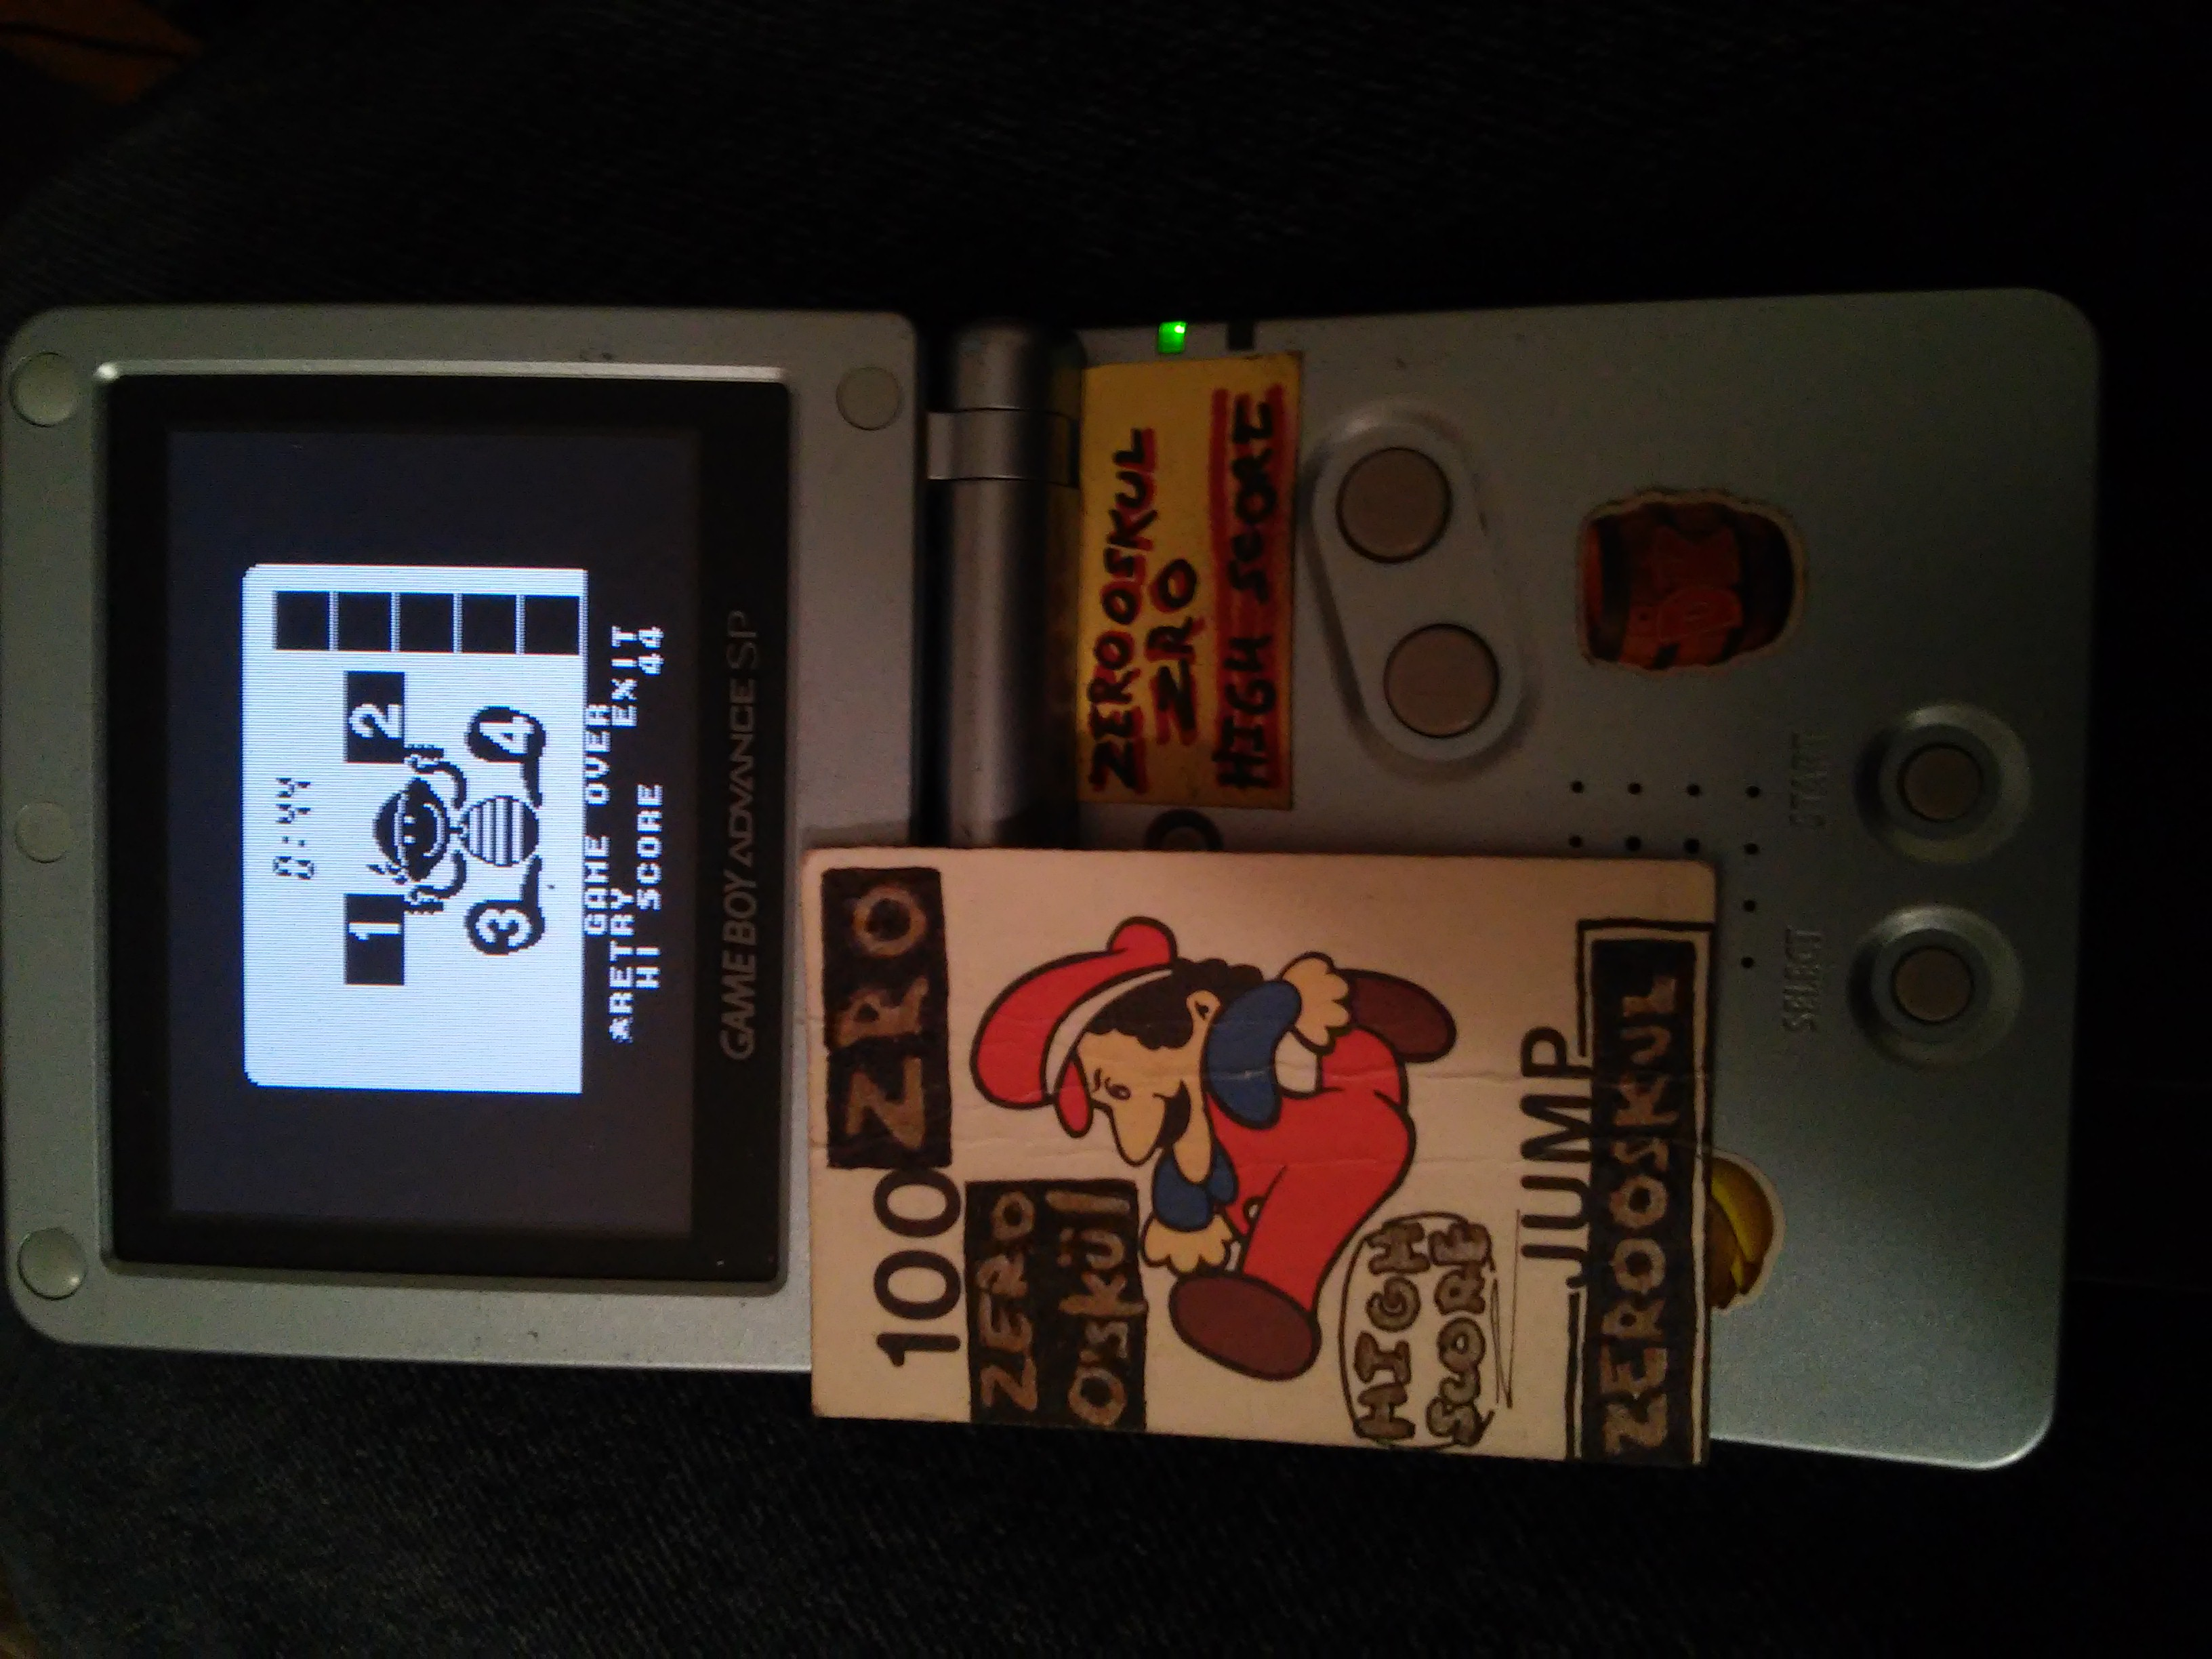 Game & Watch Gallery 3: Flagman [Classic: Game A] 44 points